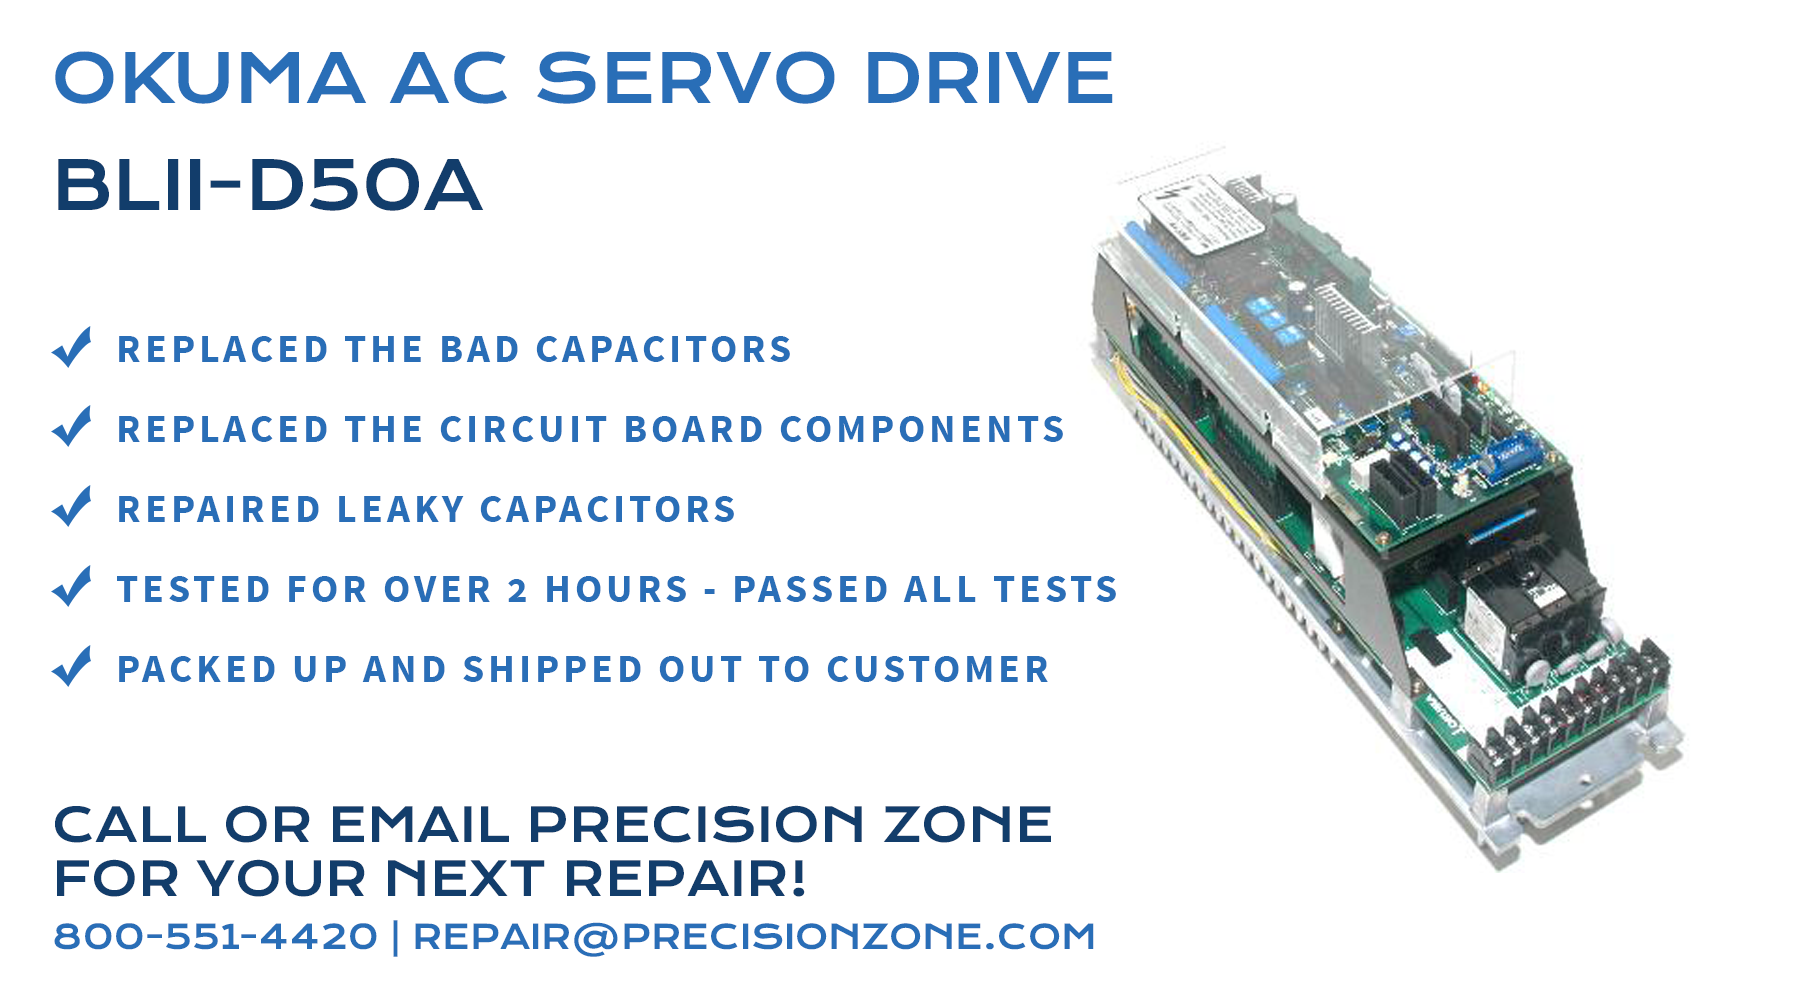 Precision Zone AC Servo Drive Repair Services